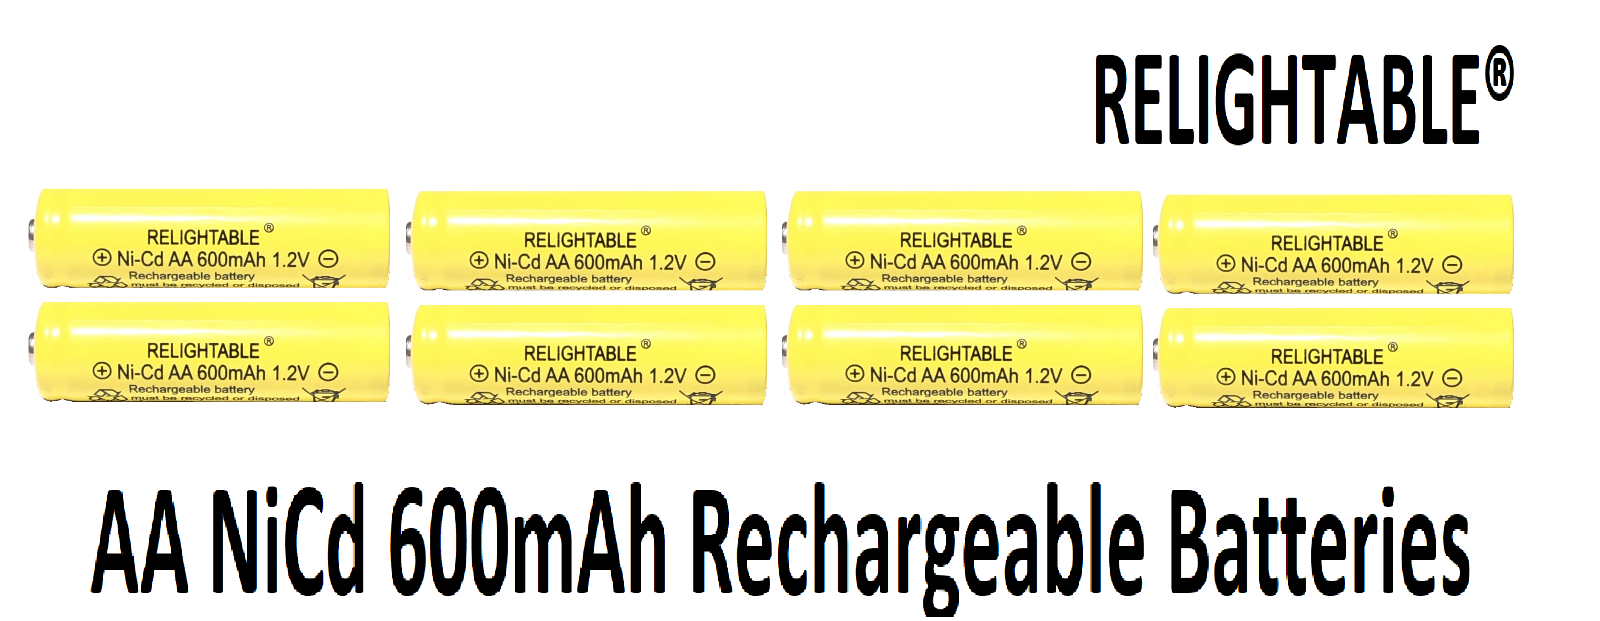 8 AA Rechargeable Batteries NiCd Ni-Cd 600mAh 1.2v Garden So